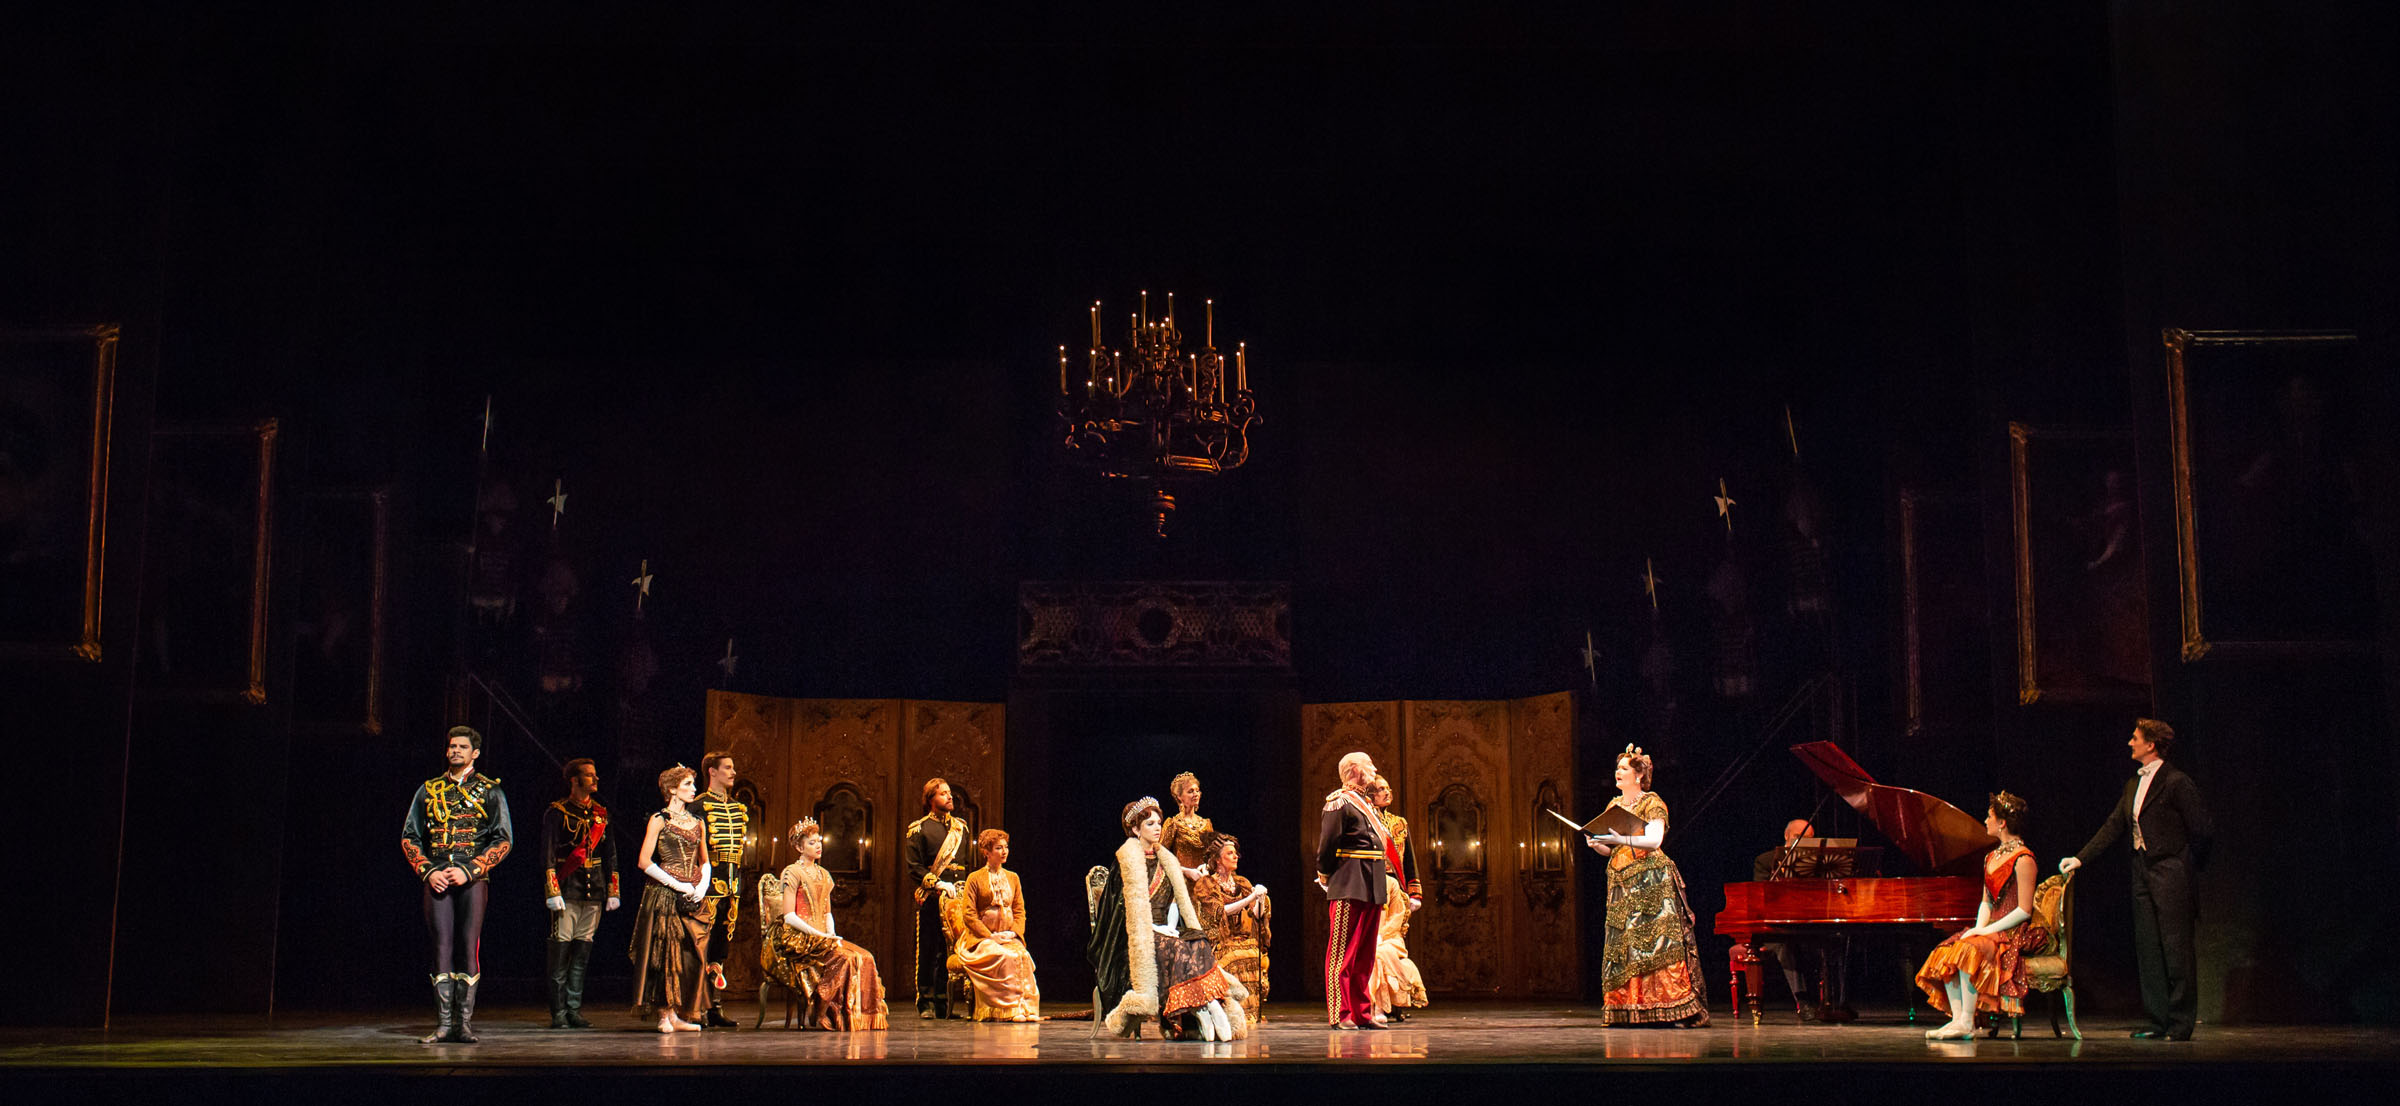 Artists of The Royal Ballet in Mayerling, The Royal Ballet